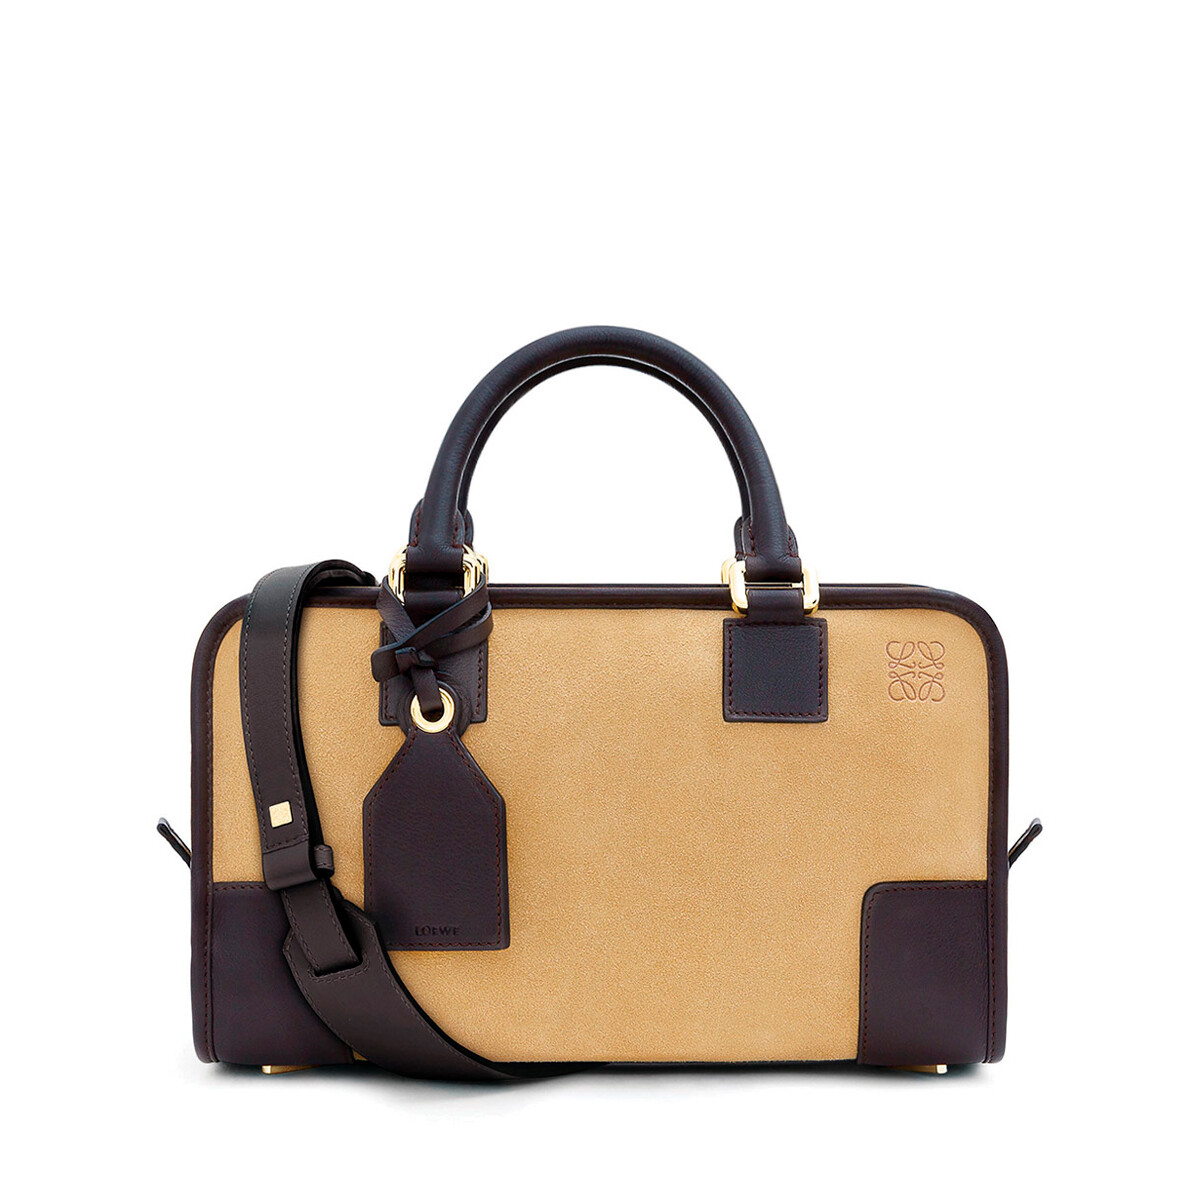 LOEWE Amazona 28 Bag Gold/Brown front